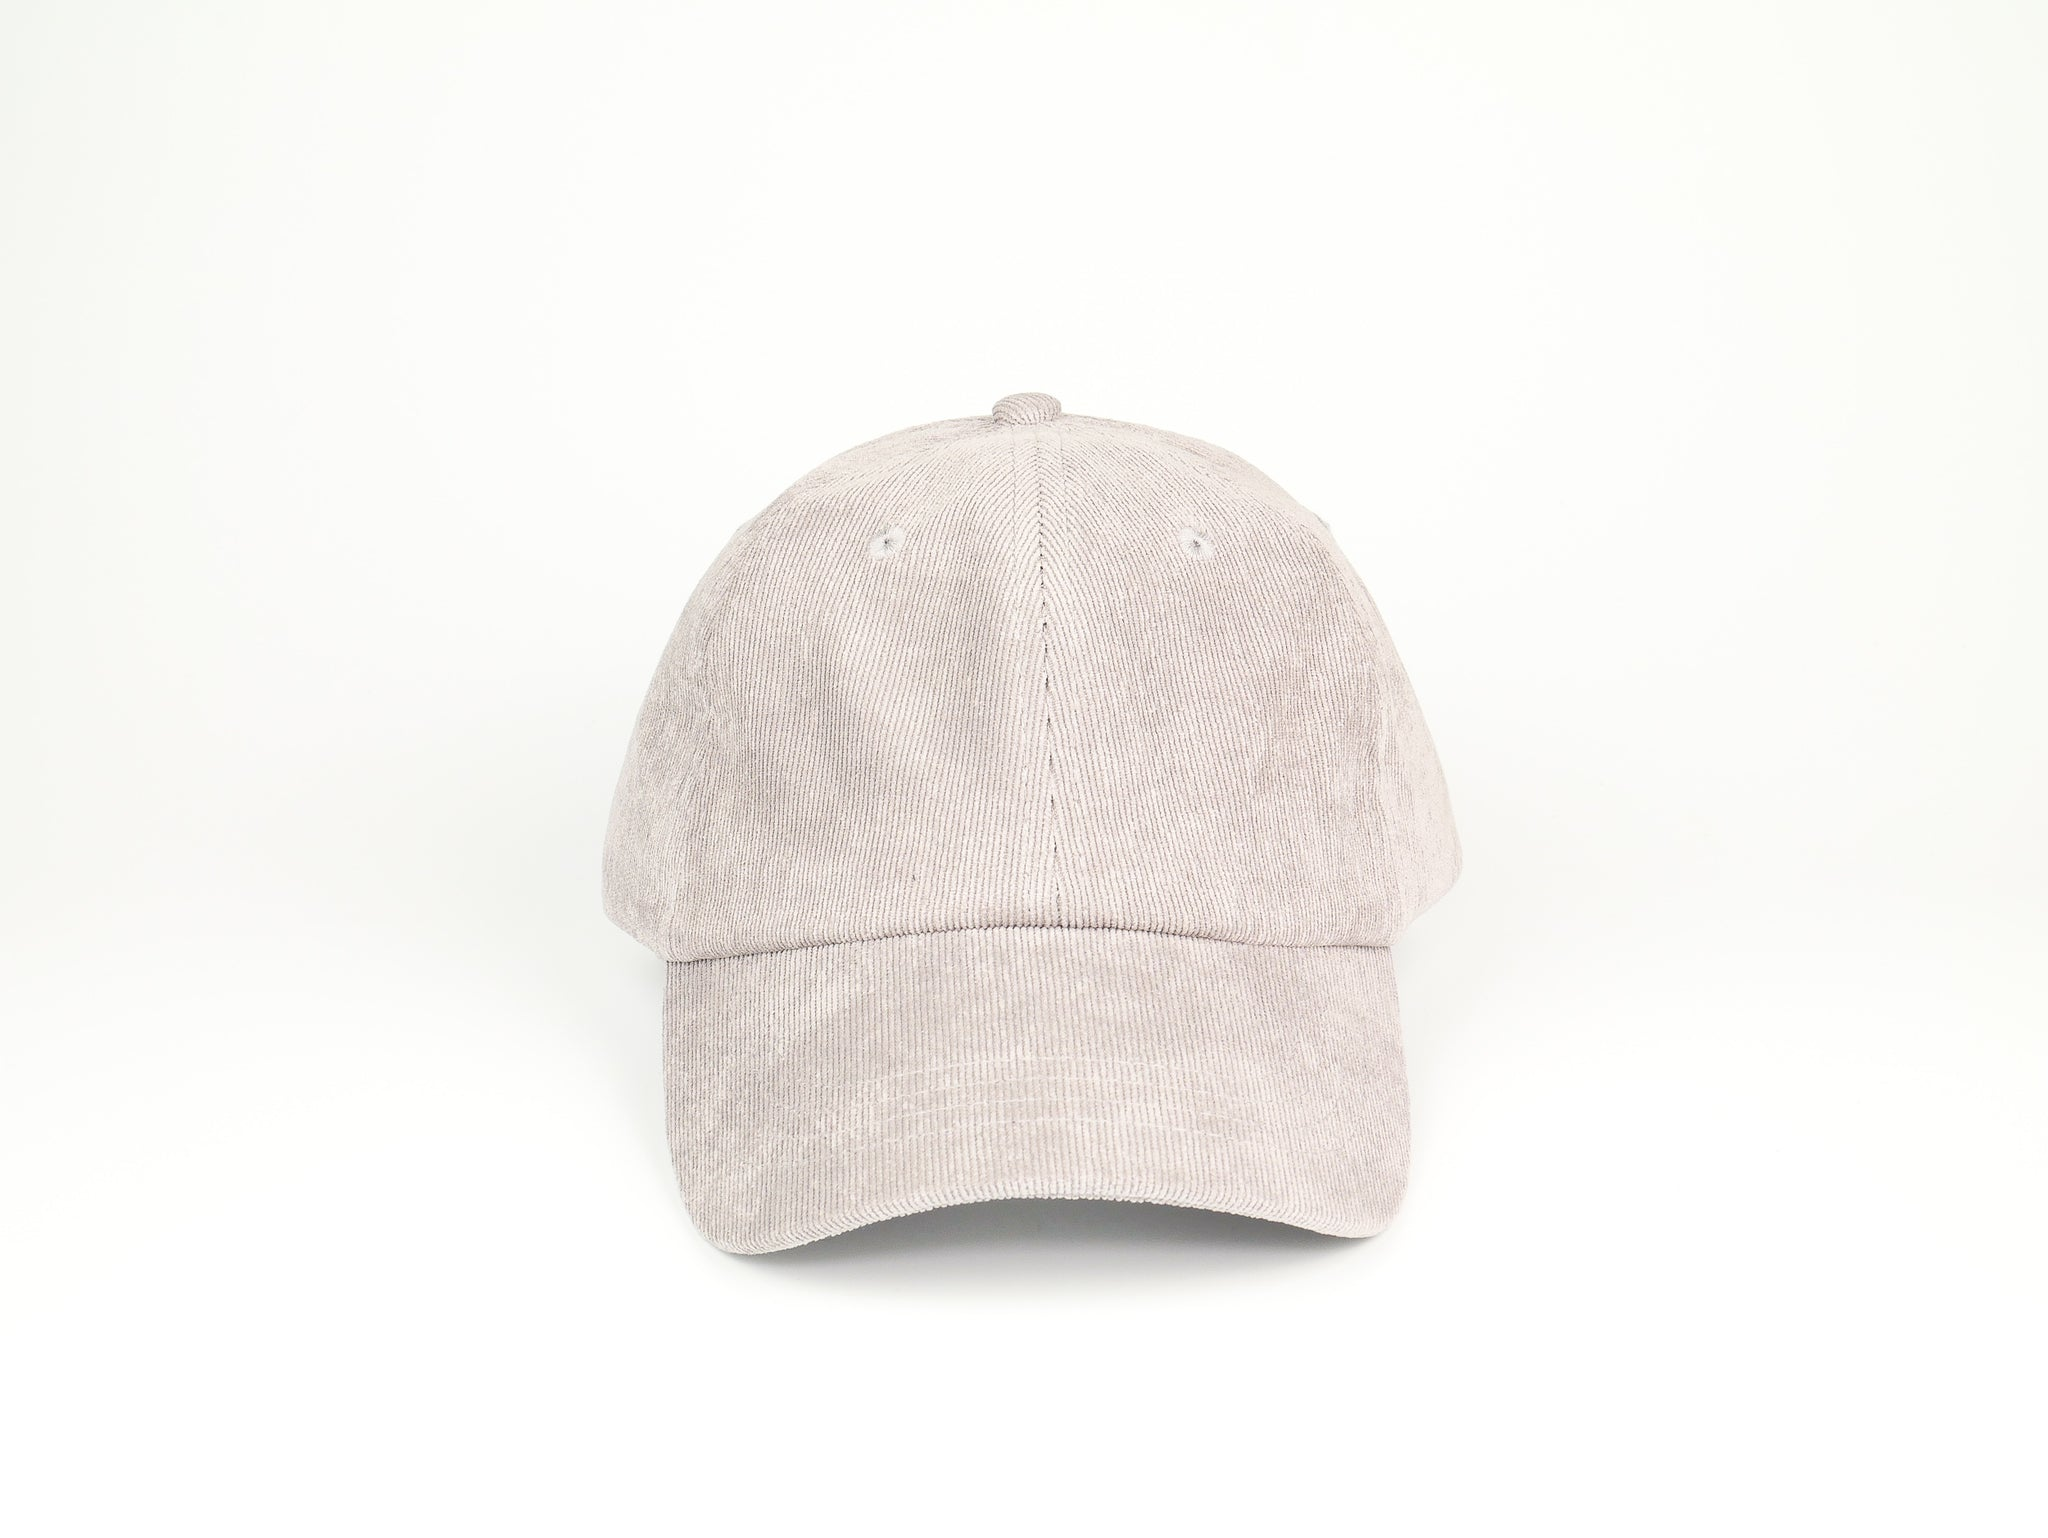 Thin Corduroy Dad Hat - Light Gray